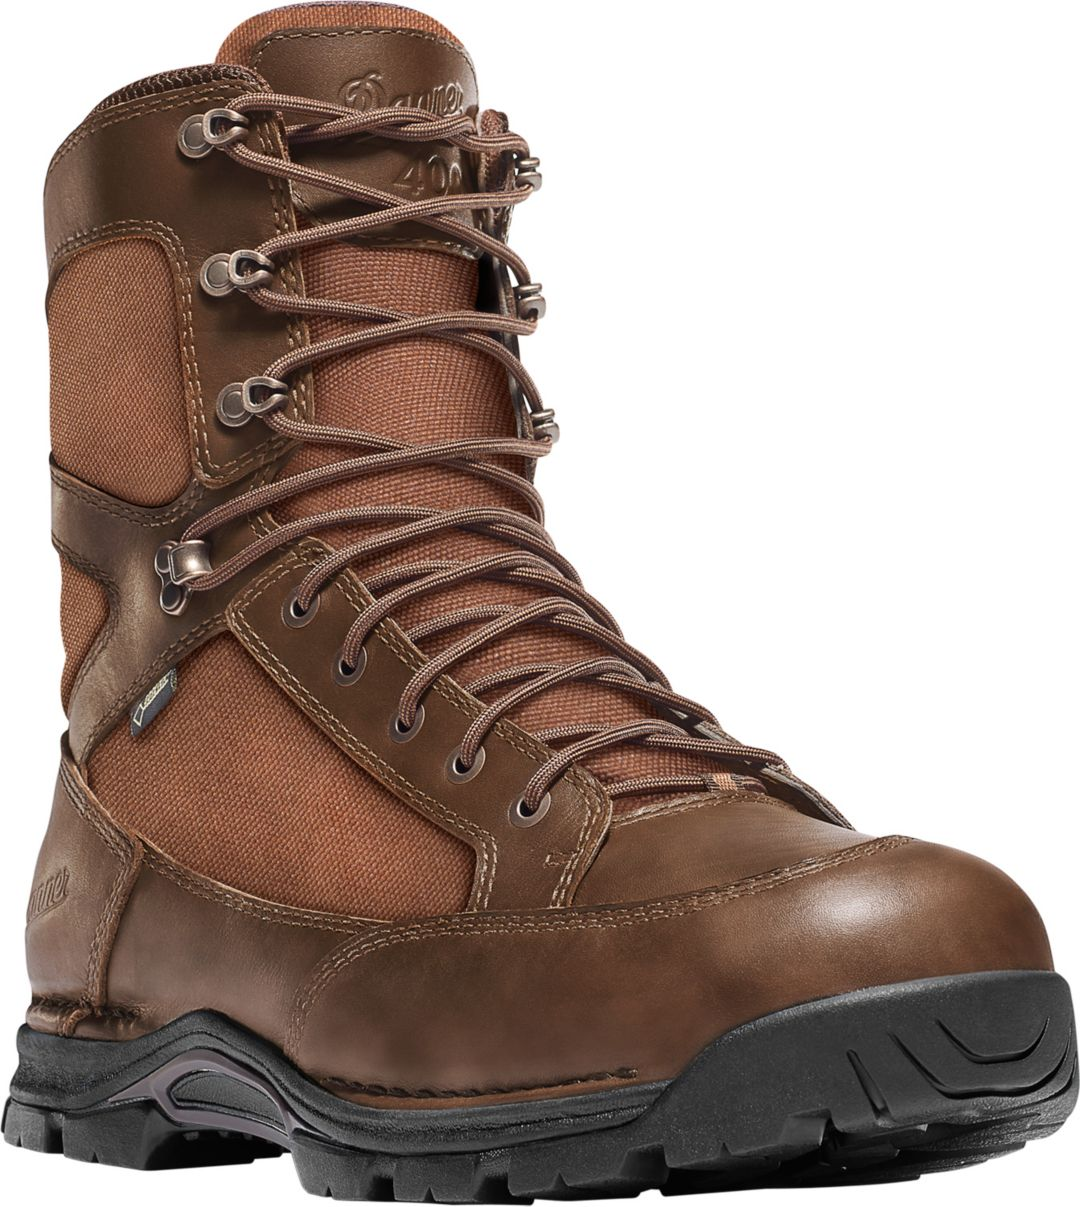 "f7389ce5dcc Danner Men's Pronghorn 8"" GORE-TEX Hunting Boots"